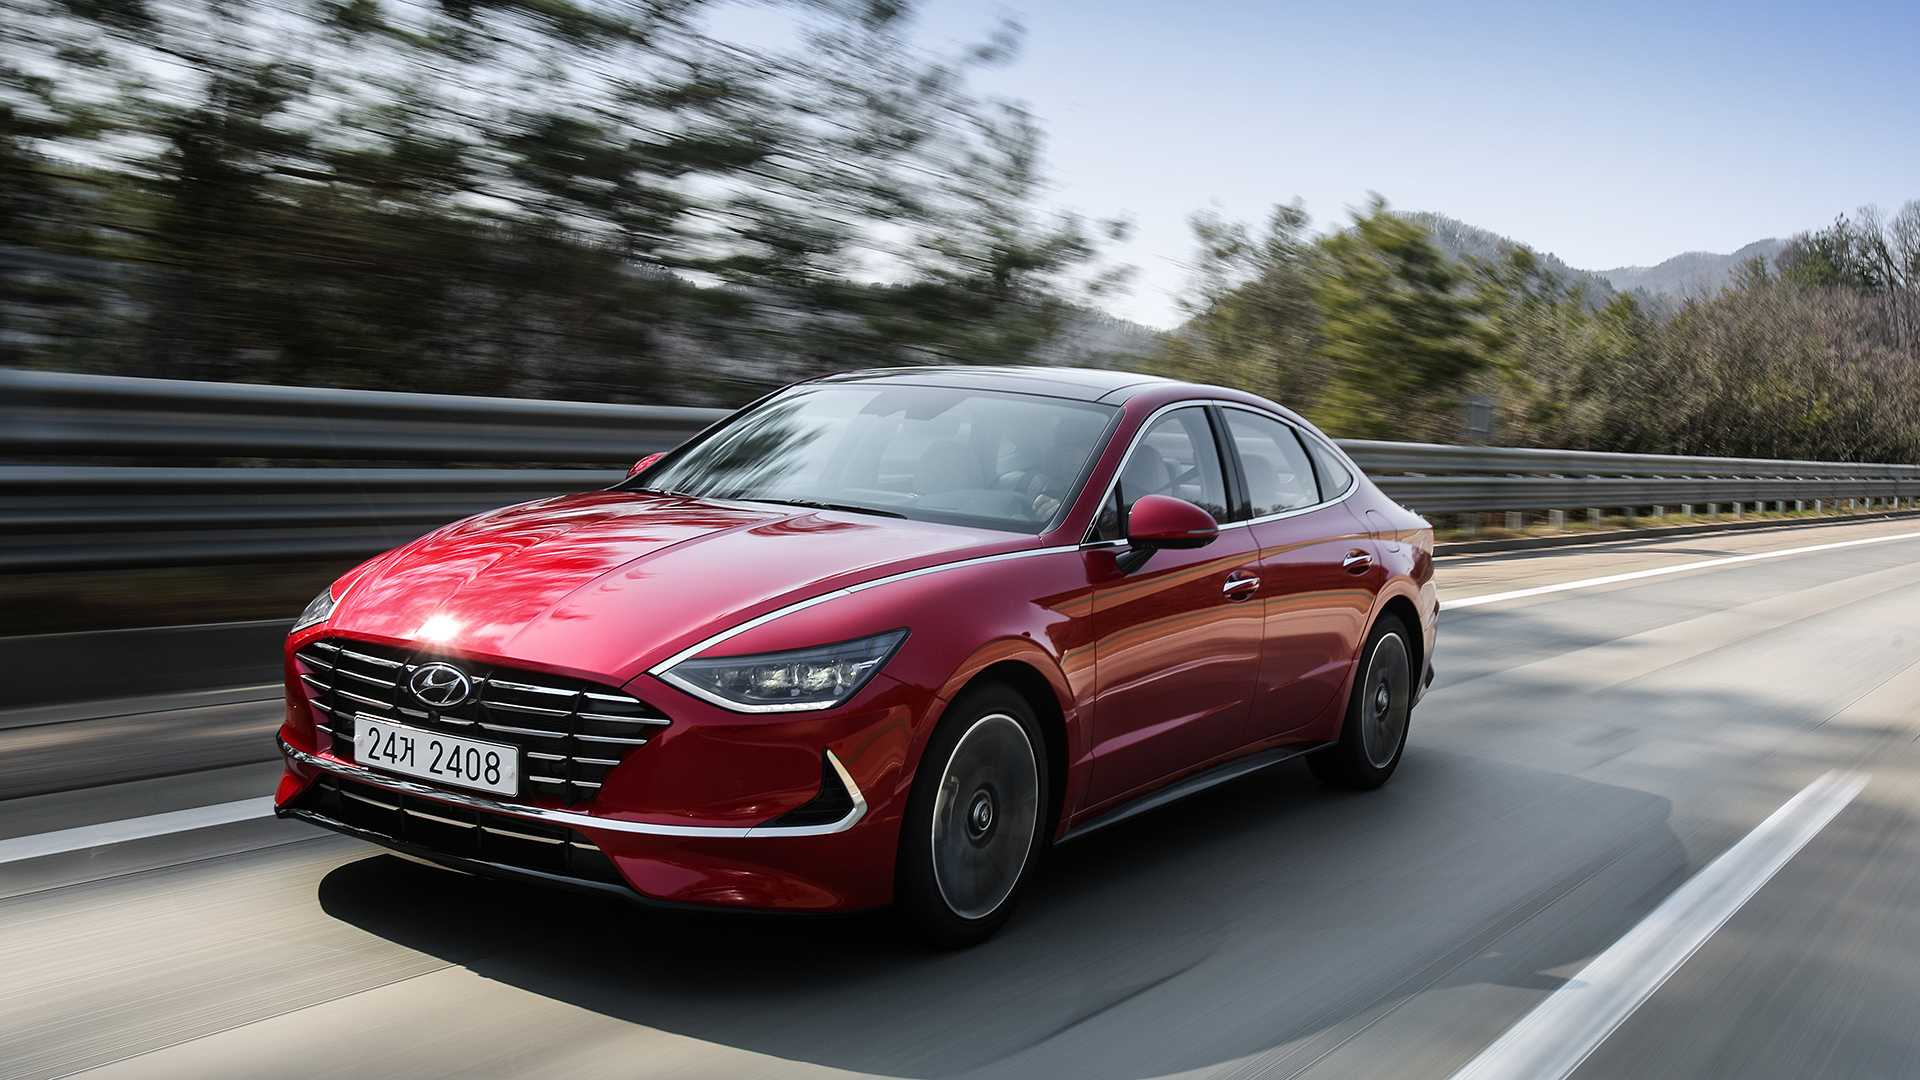 22 Best Review When Will The 2020 Hyundai Sonata Be Available History with When Will The 2020 Hyundai Sonata Be Available